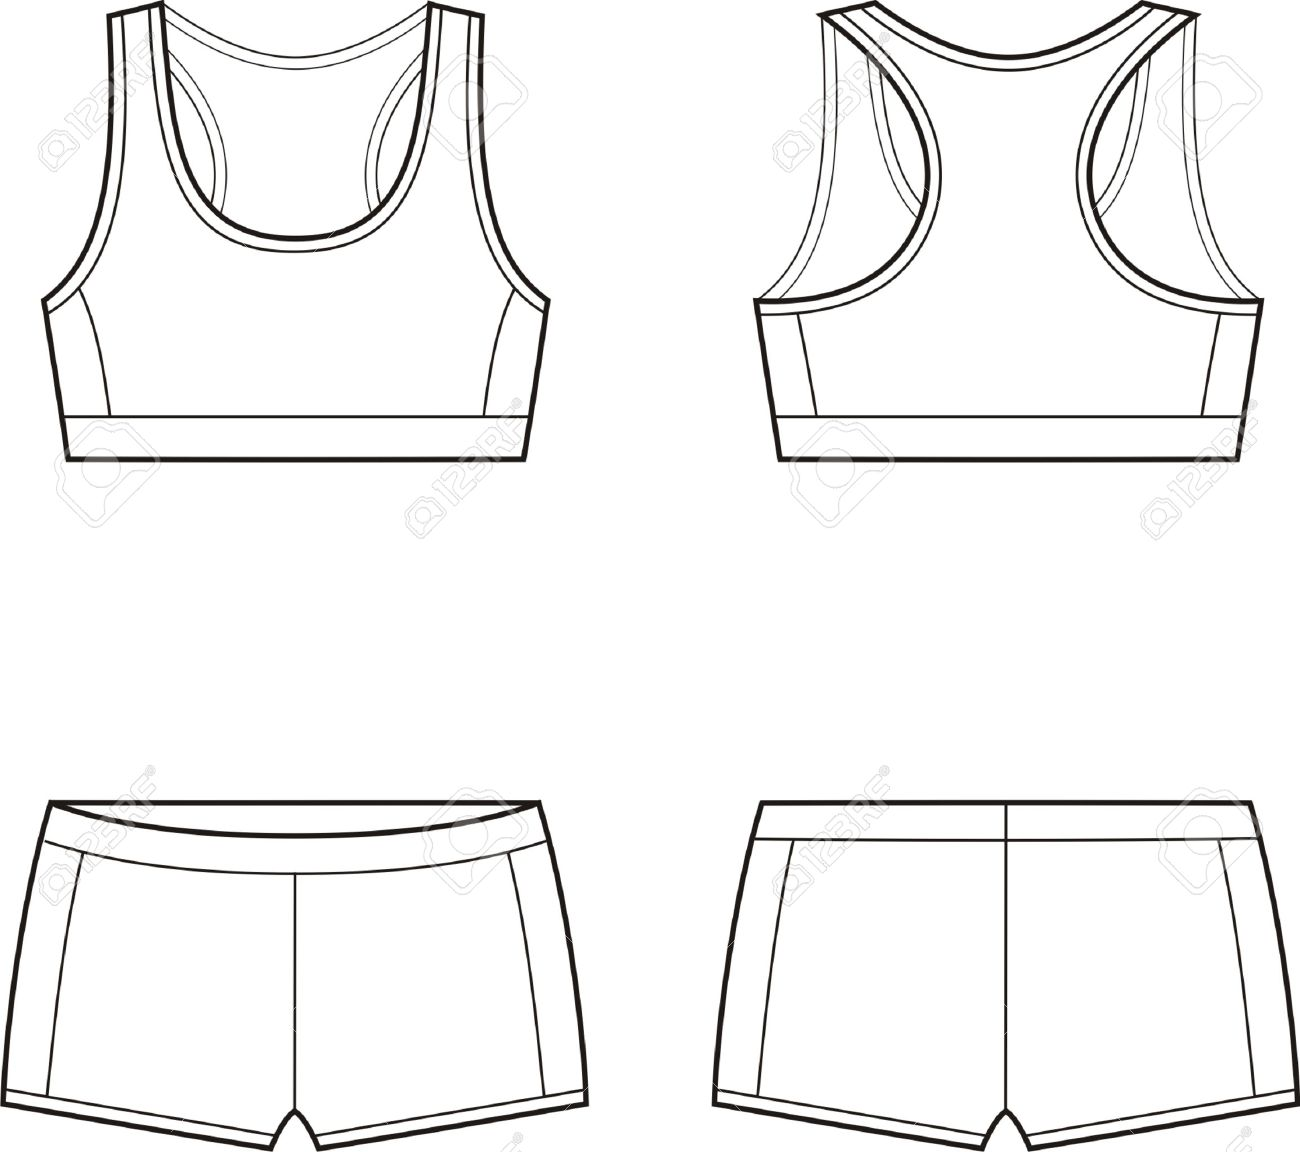 85ab003354905 Vector - Vector illustration of women s sport underwear Bra and shorts  Front and back views